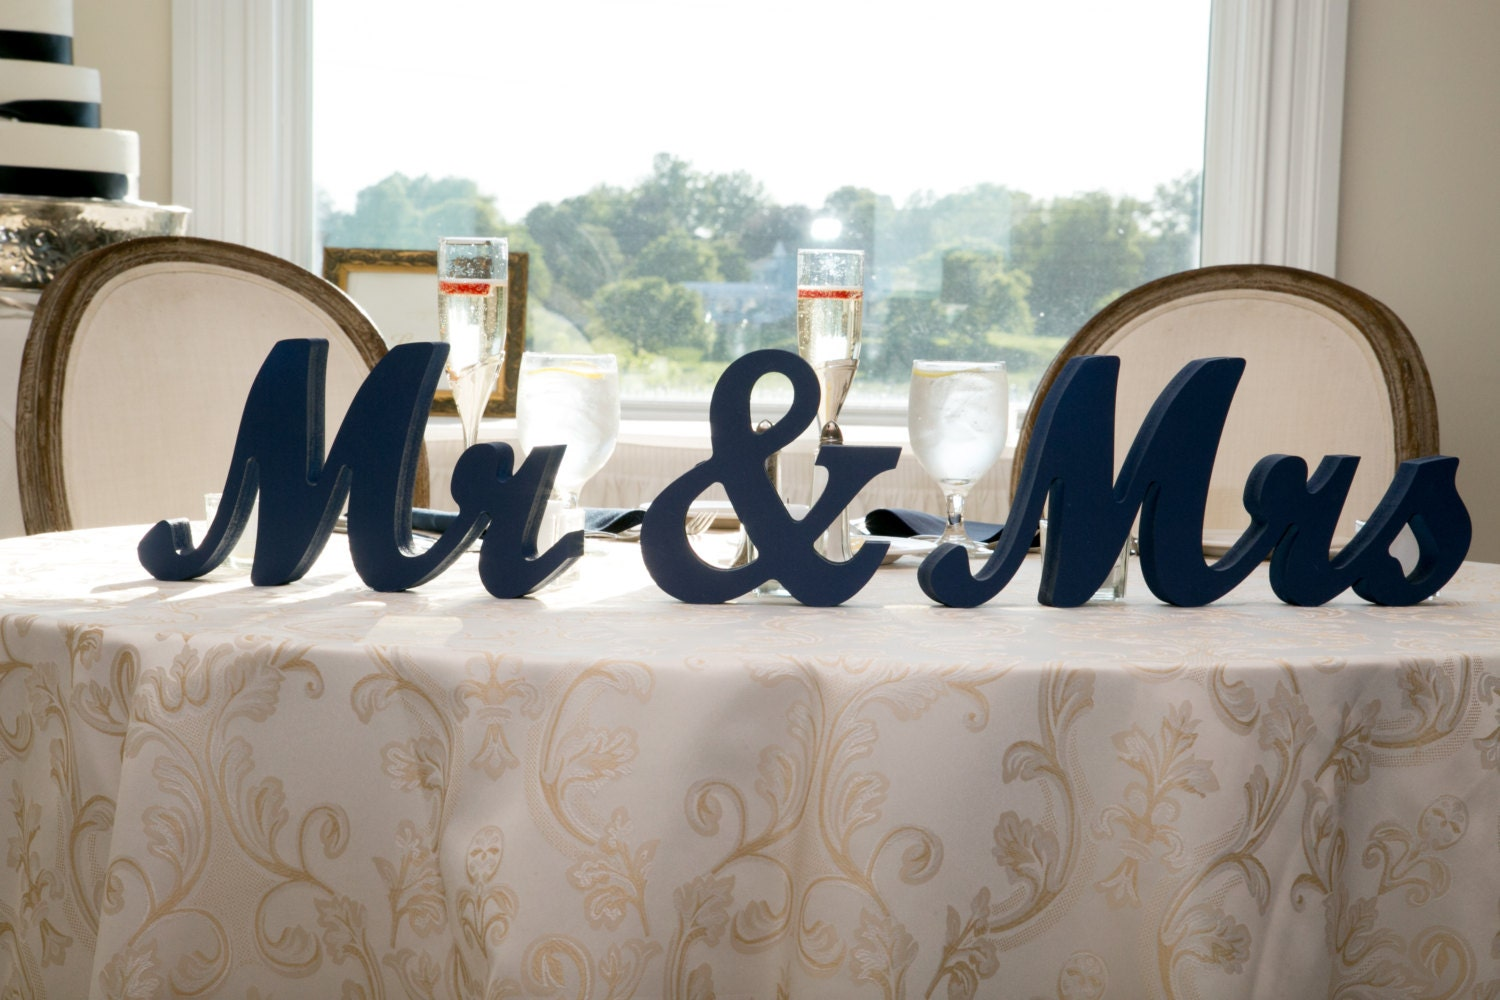 Mr And Mrs Large Wooden Letters: Mr Mrs Wedding Table Signs For Sweetheart Table Decor Wooden